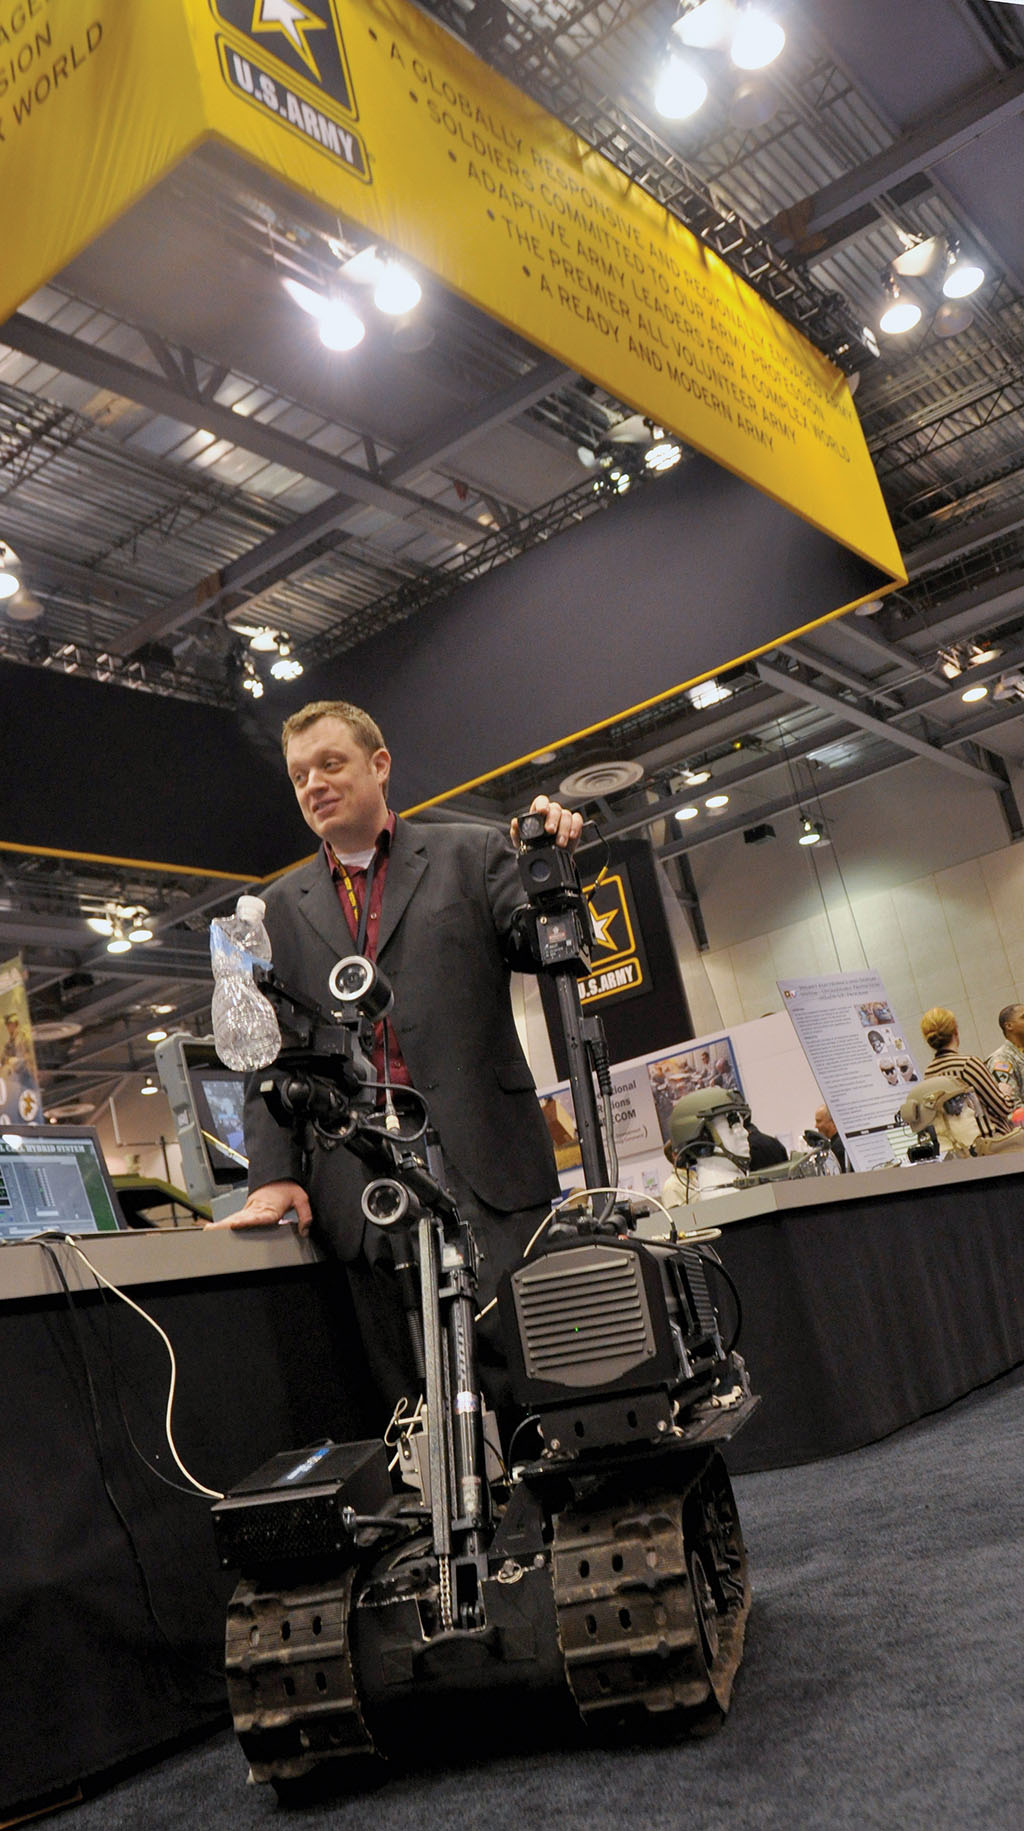 TARDEC engineer Dan Maslach demonstrates a Talon robot outfitted with 200-watt fuel cells at the AUSA ILW Winter Symposium and Exposition in February. The kinetic-bomb-detecting robot can operate in adverse conditions and rough terrain, and its improved fuel cells will lighten the load that the warfighter carries in the field. (U.S. Army photo by Cherish Washington, AMC)